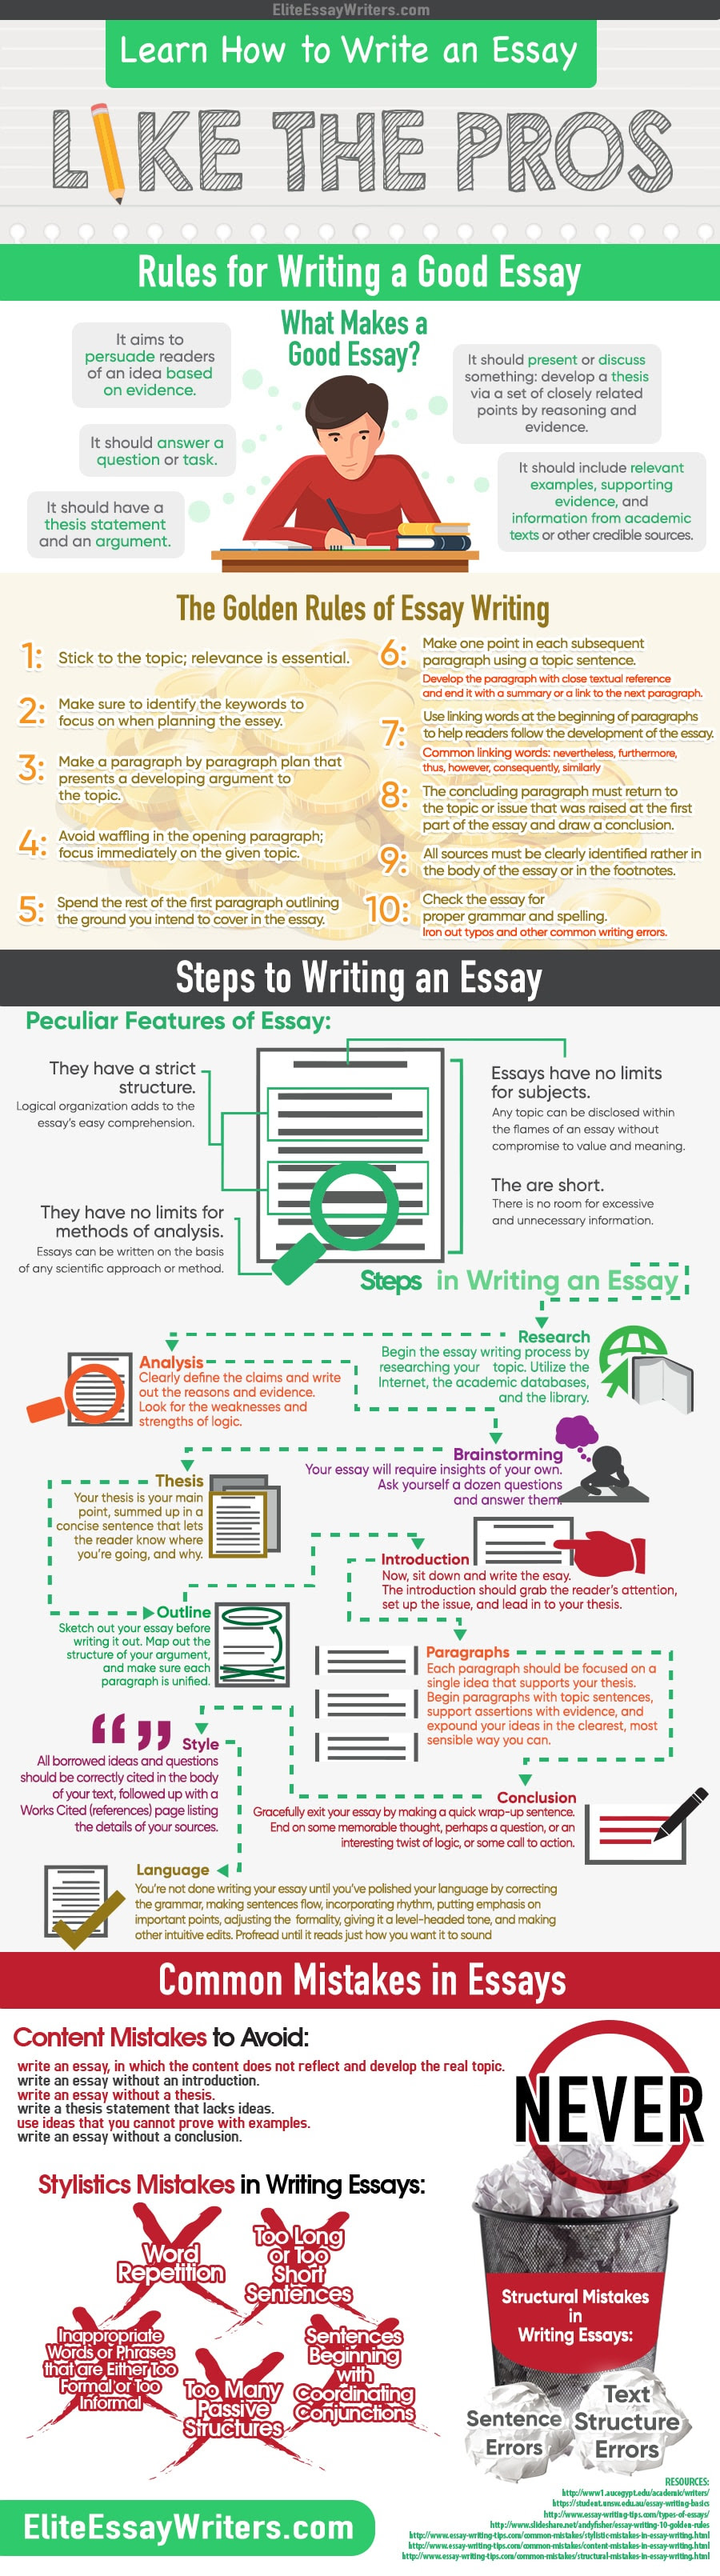 How to write a good essay tips